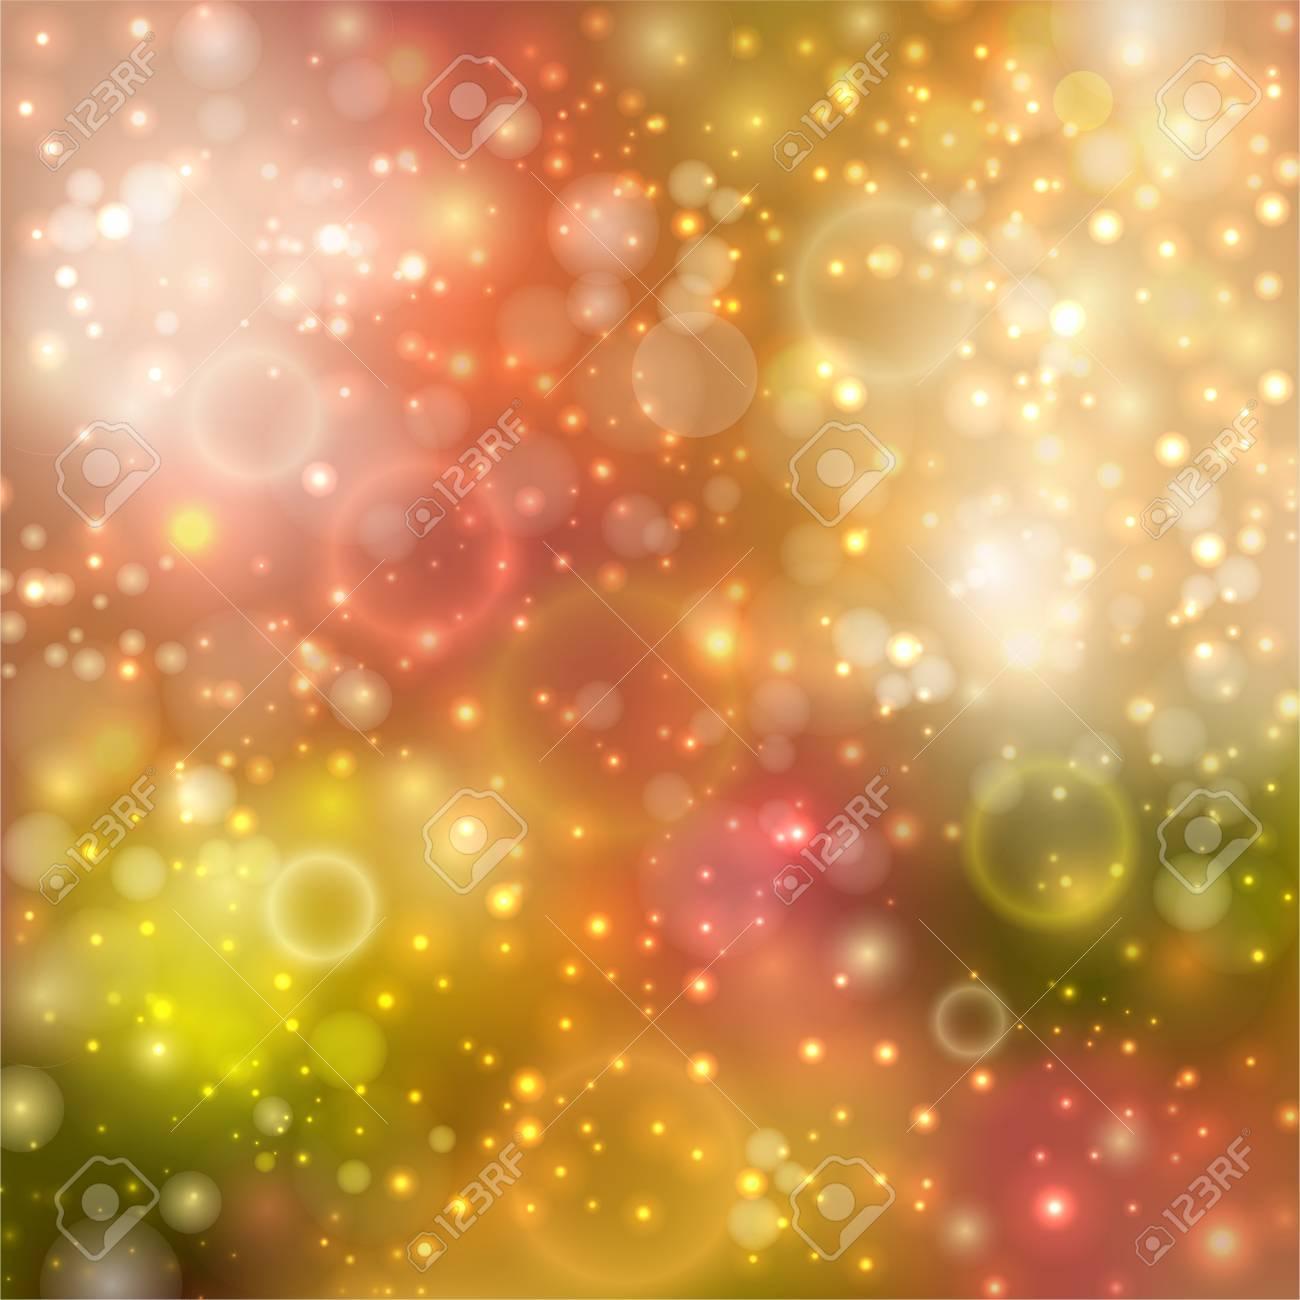 Elegant background with glowing lights Stock Vector - 16246698